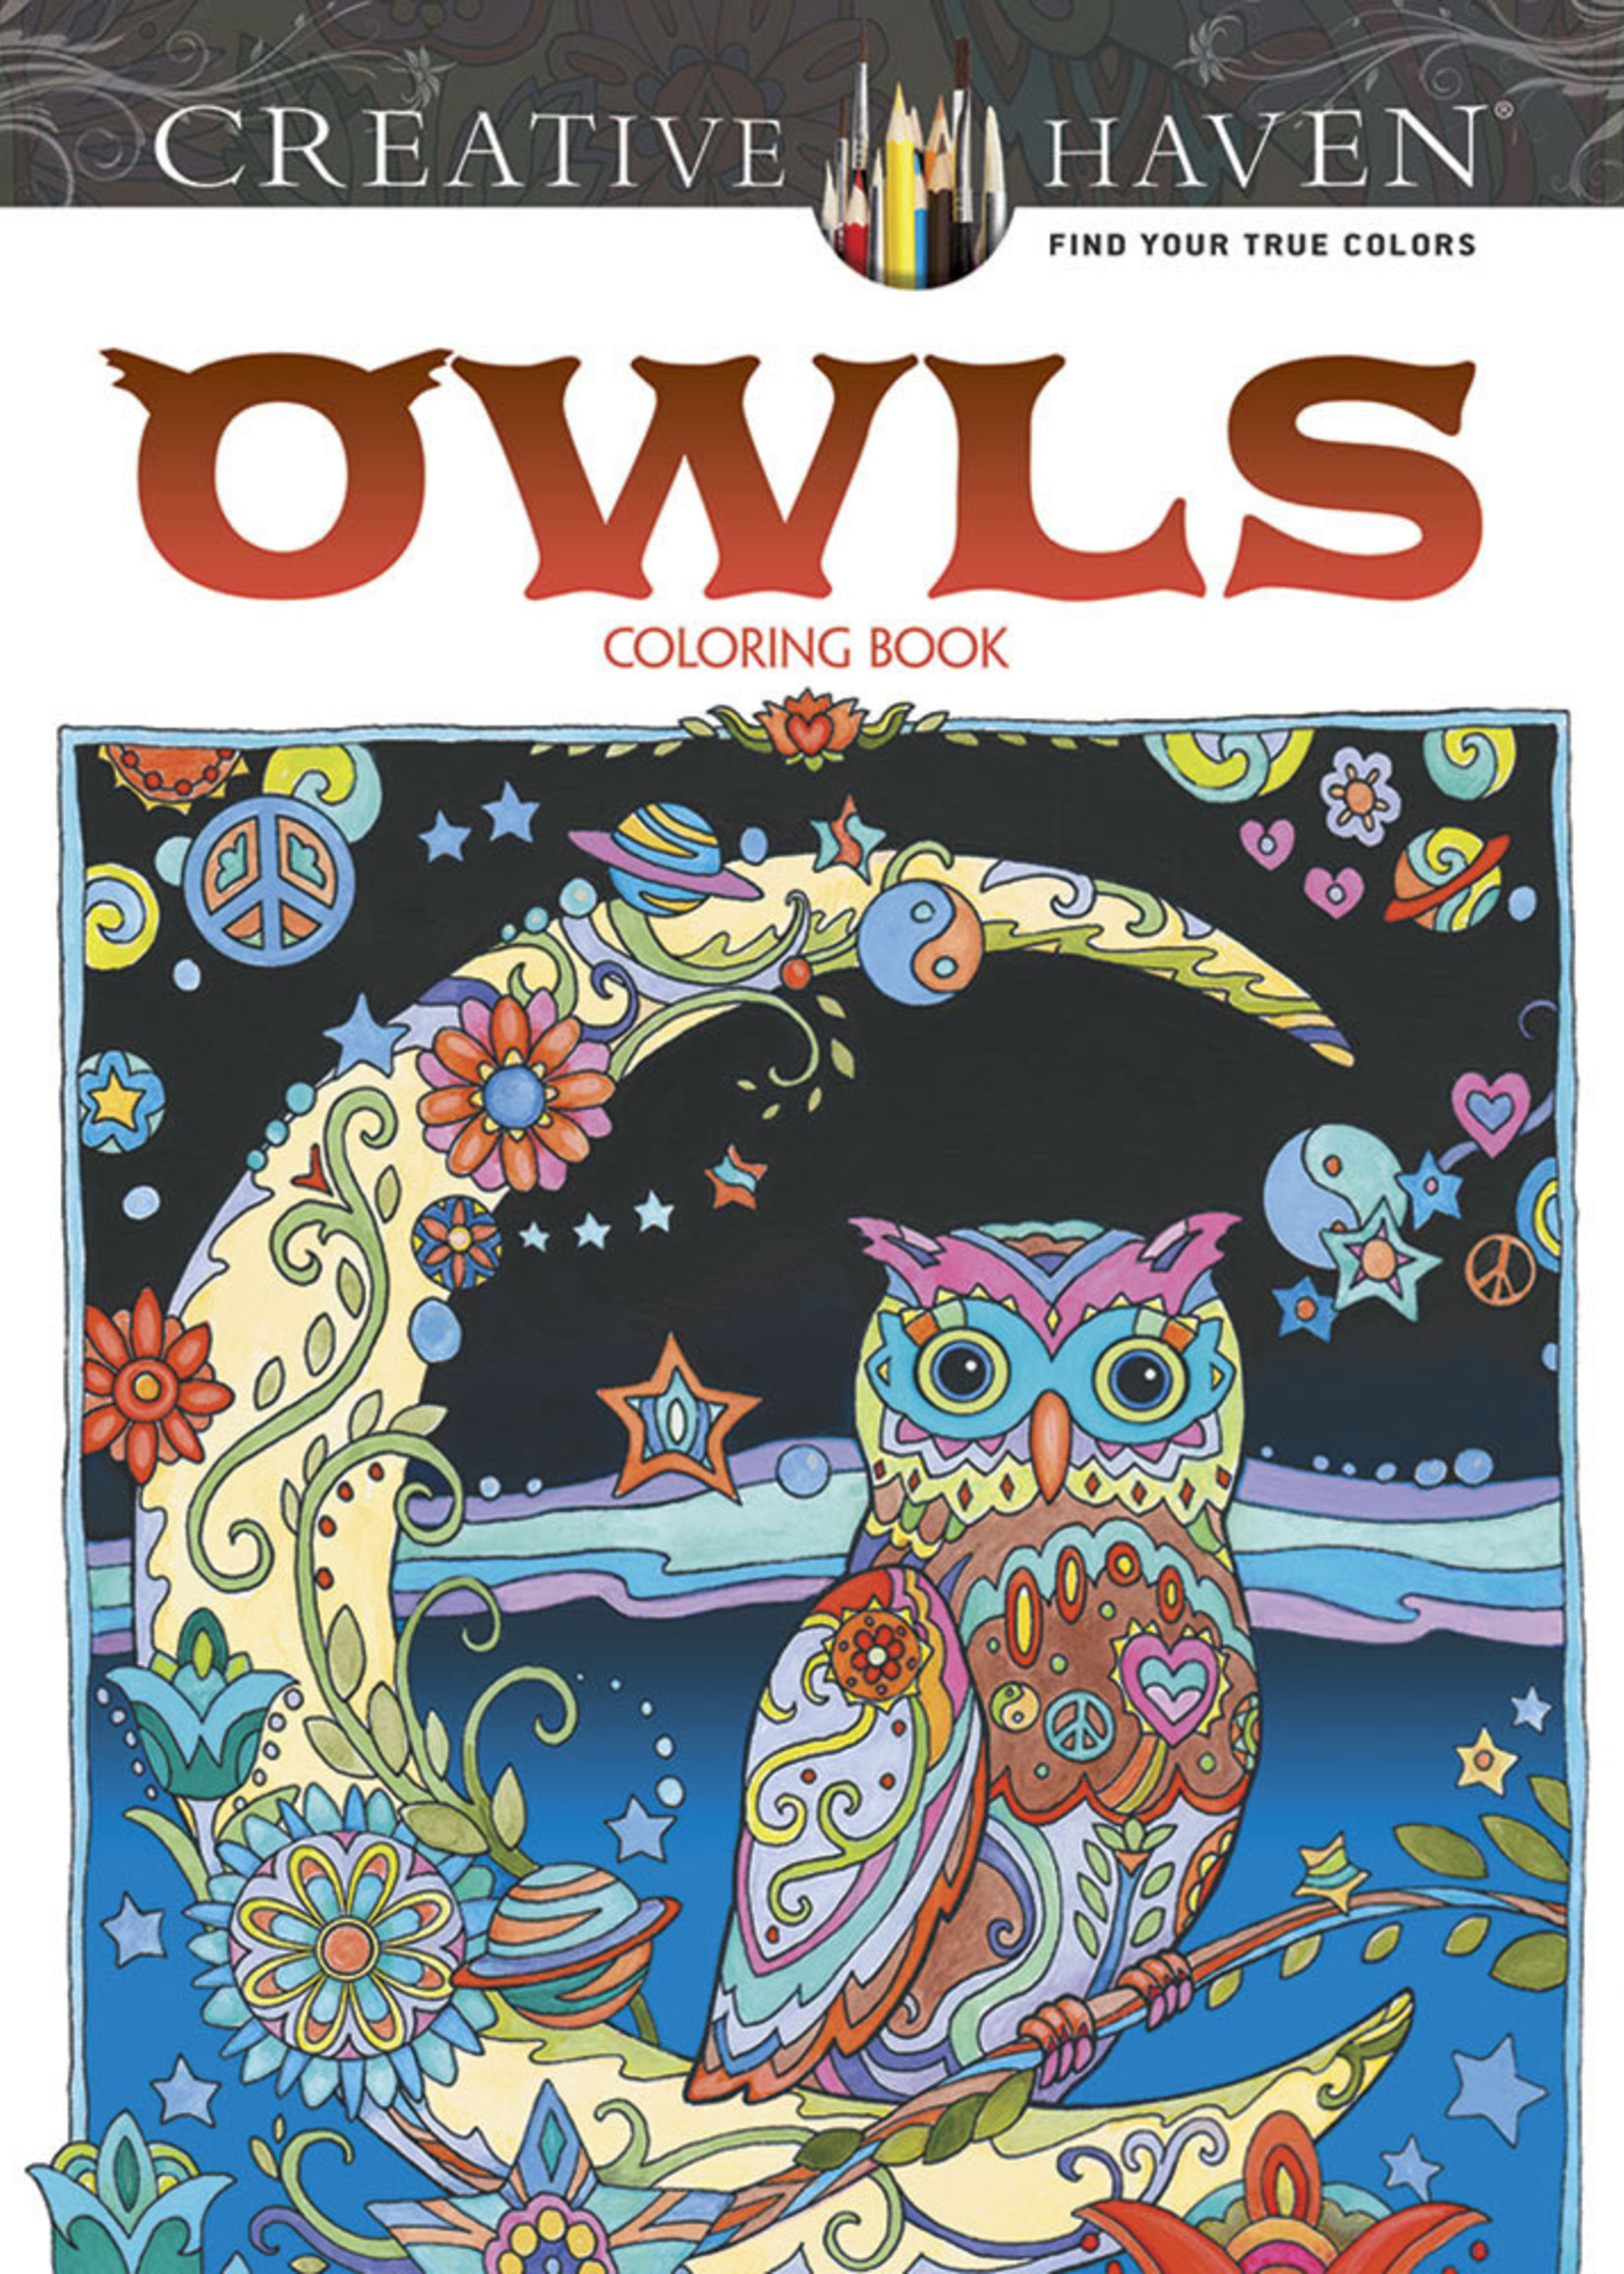 Creative Haven Owls Coloring Book - Paperback